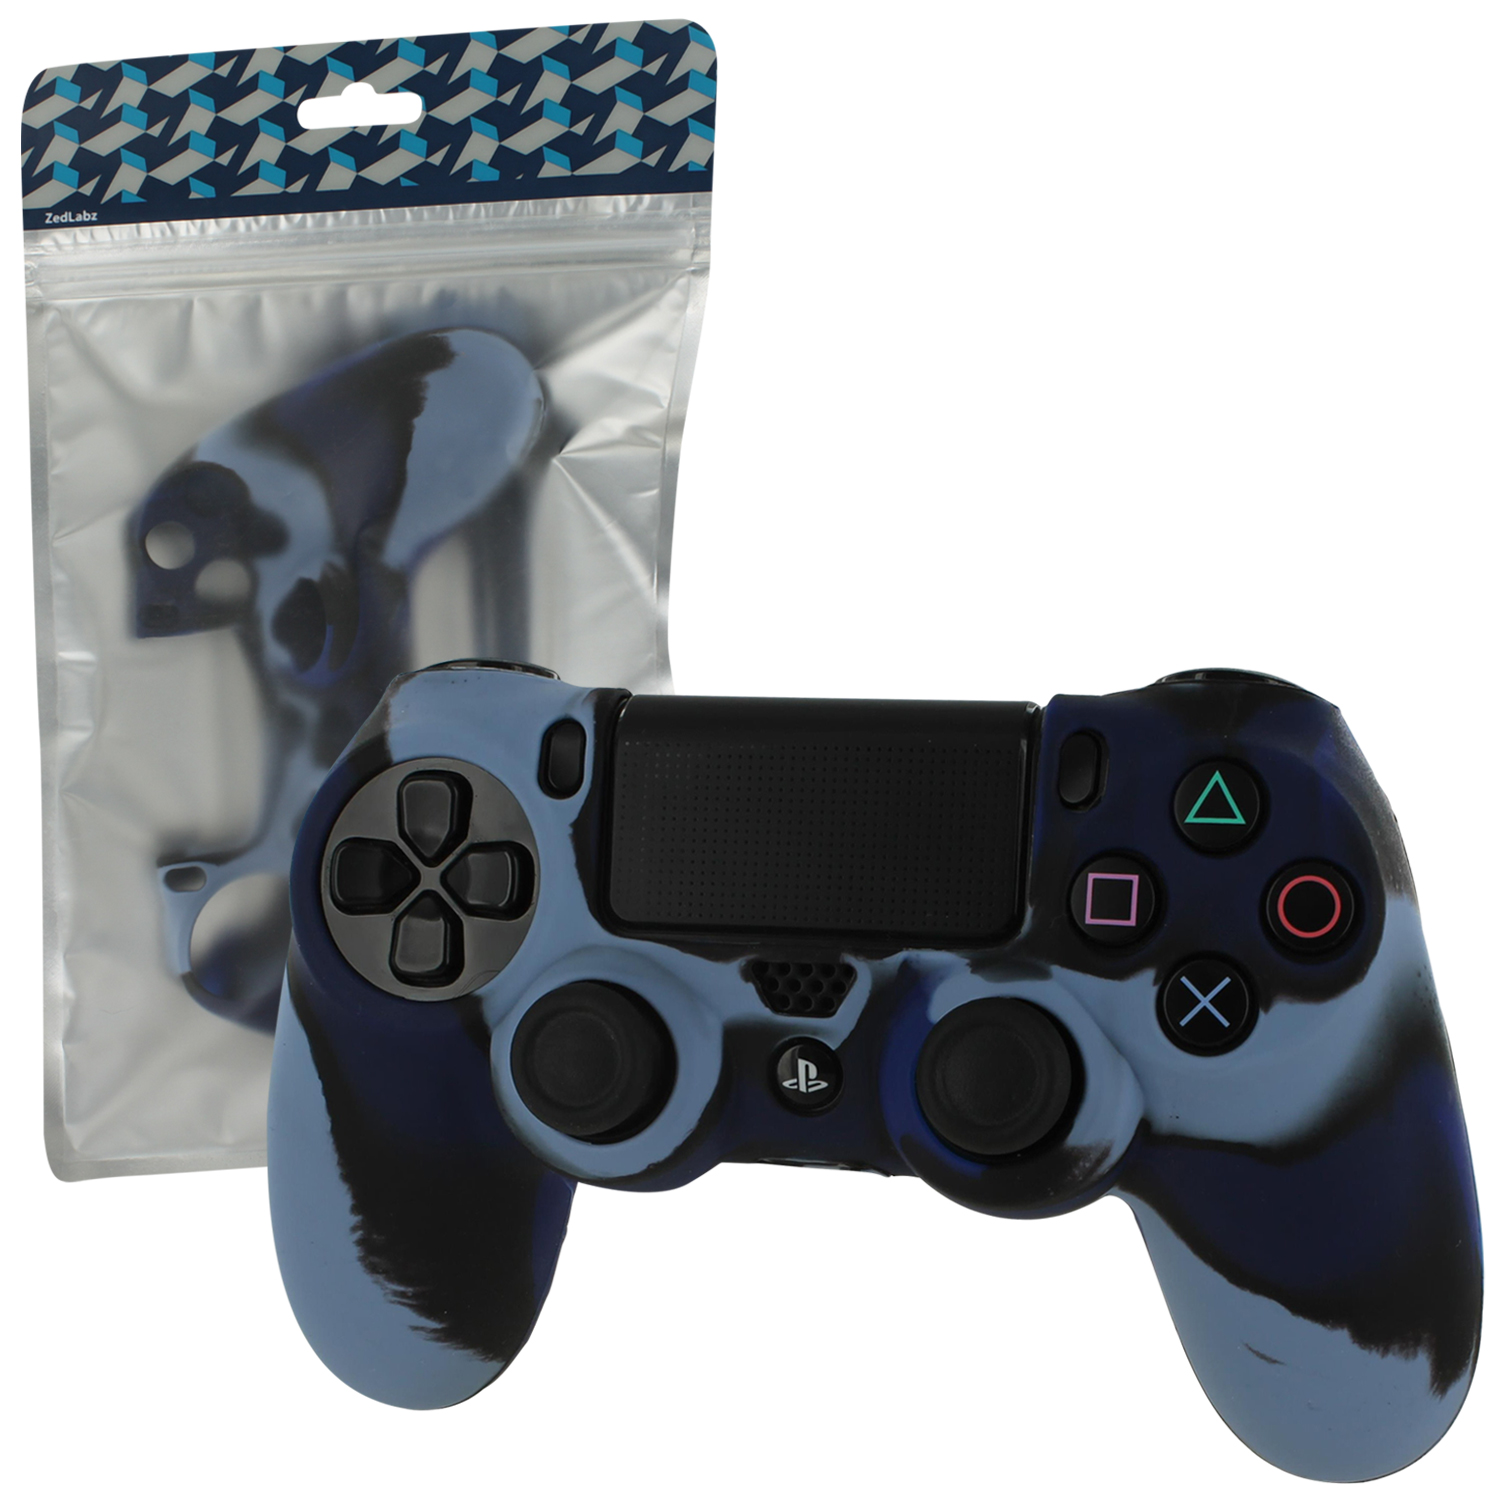 Zedlabz Silicone Rubber Skin Grip Cover For Sony Ps4 Controller With Ribbed Handle - Camo Dark Blue